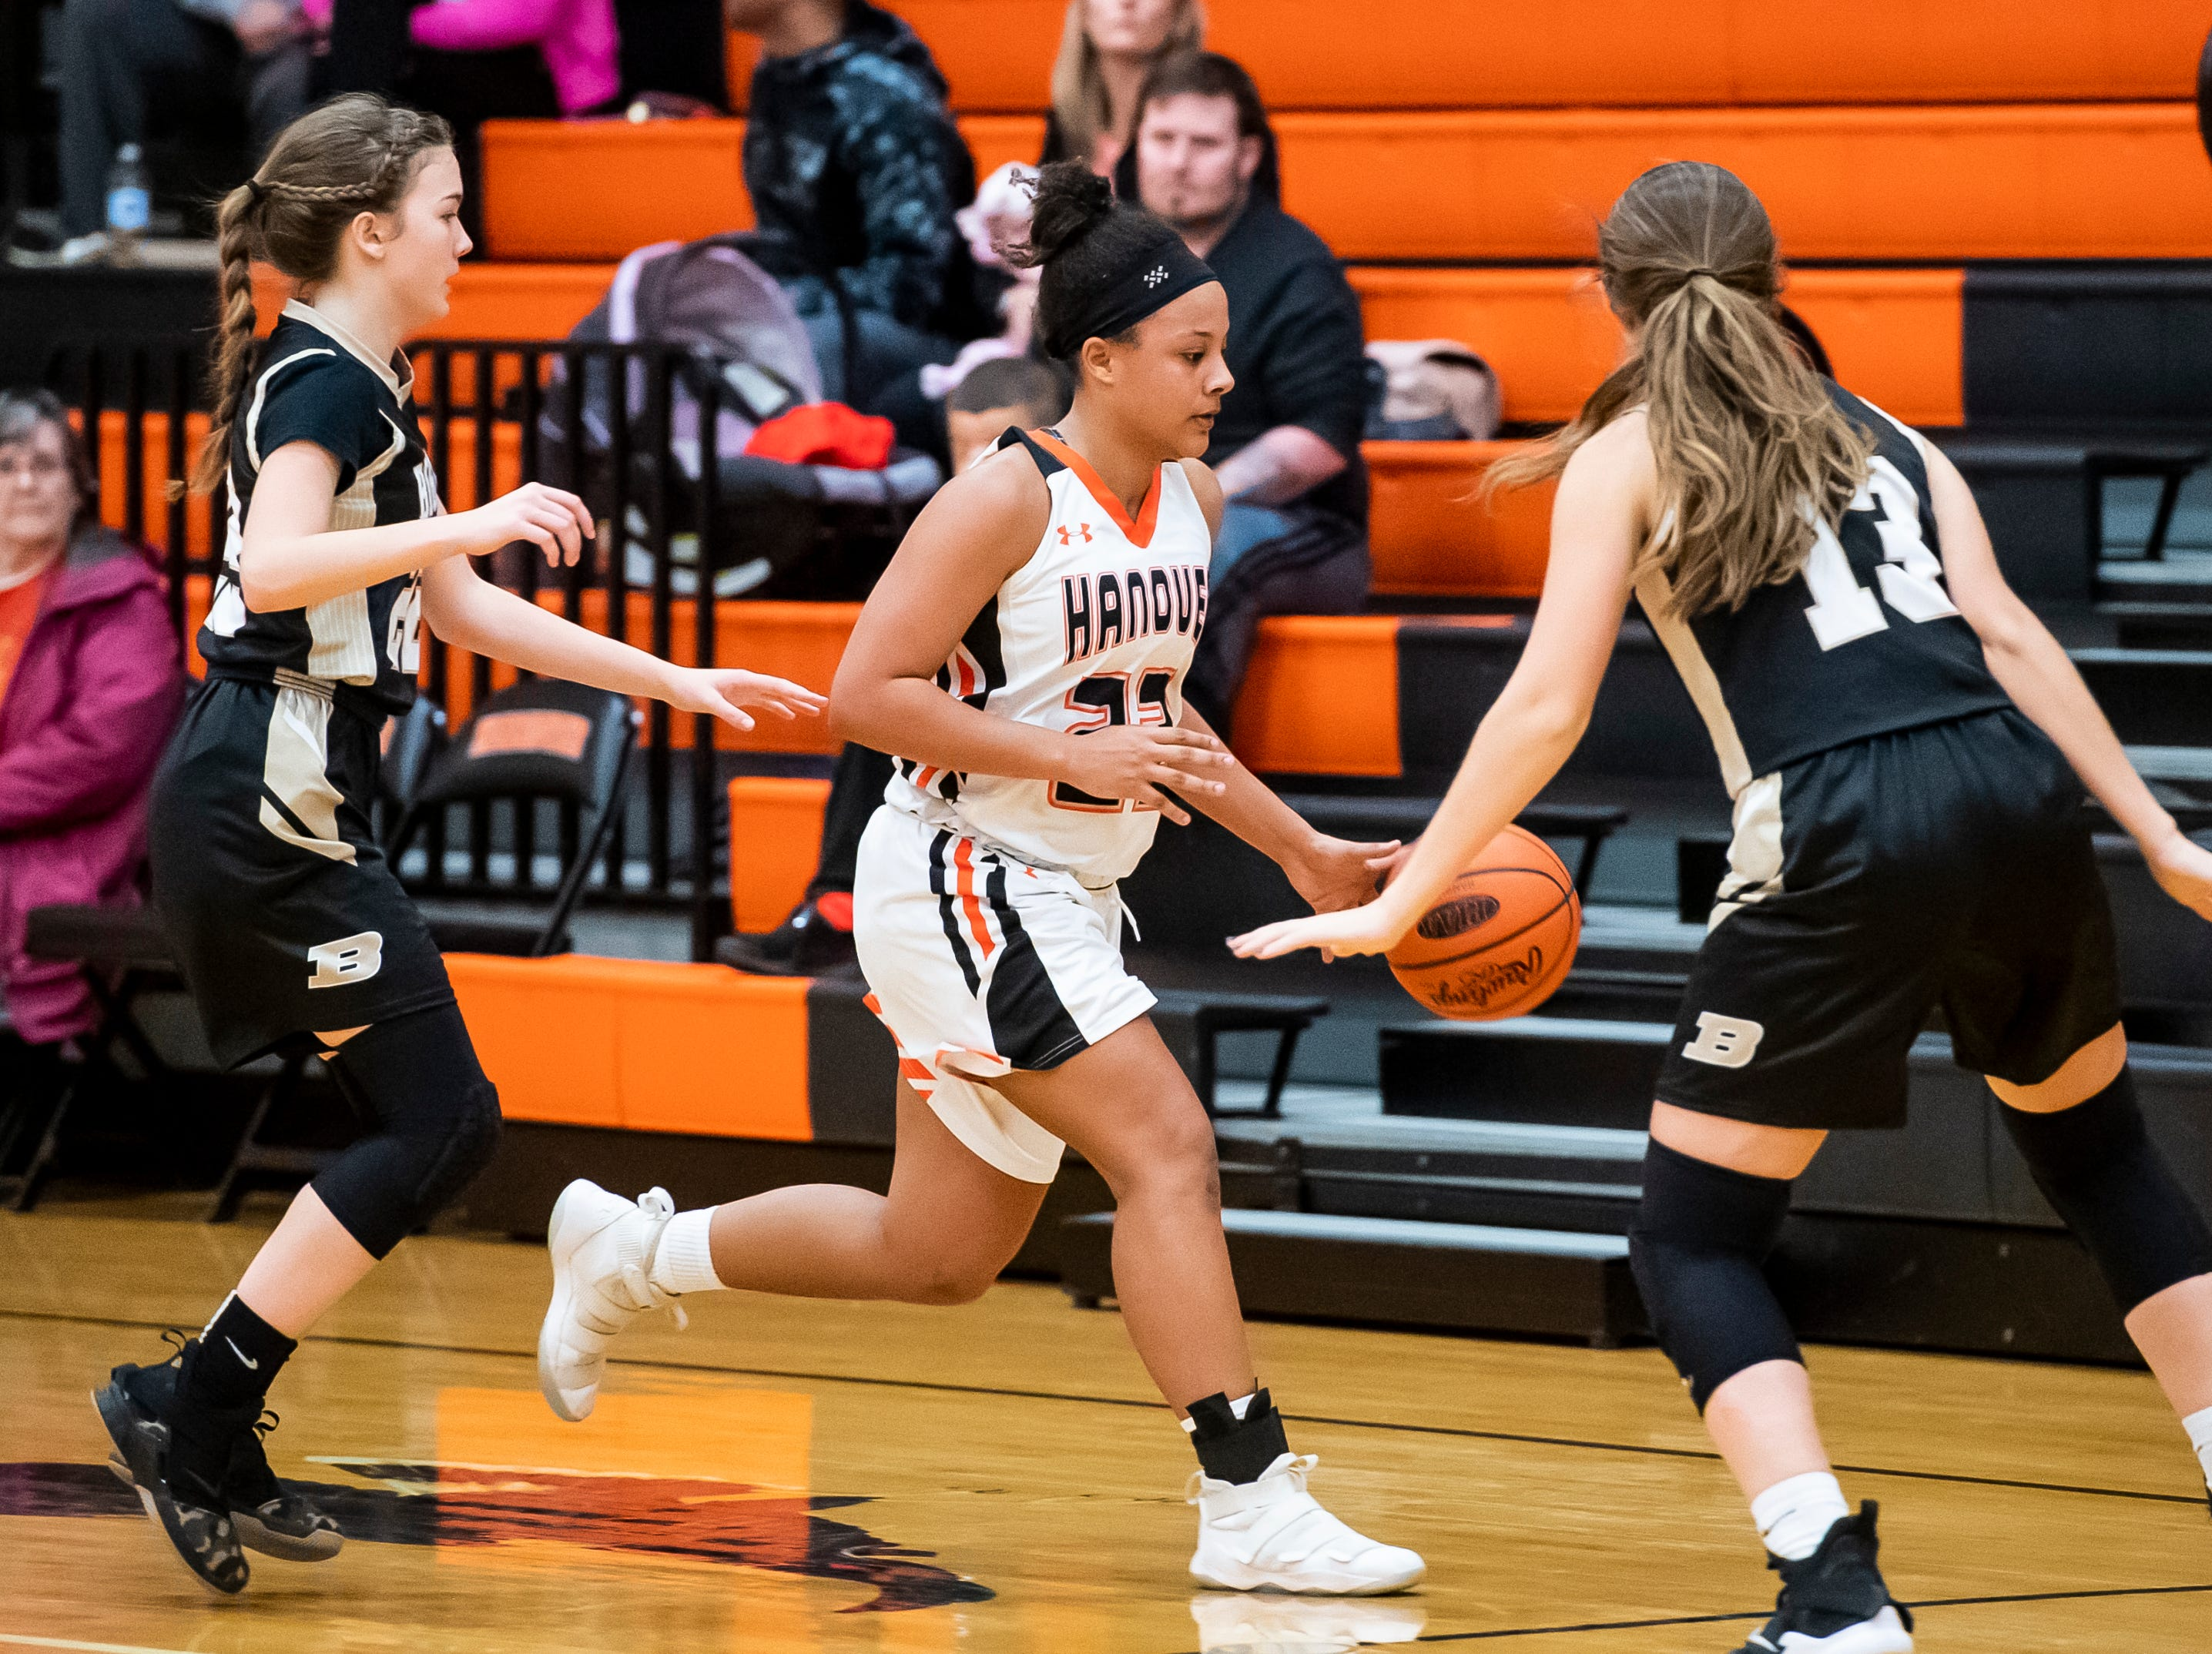 Hanover's Mattie Heath dribbles between a pair of Biglerville defenders in the championship game of the Hanover Holiday Classic on Friday, December 28, 2018. Hanover won 30-20.